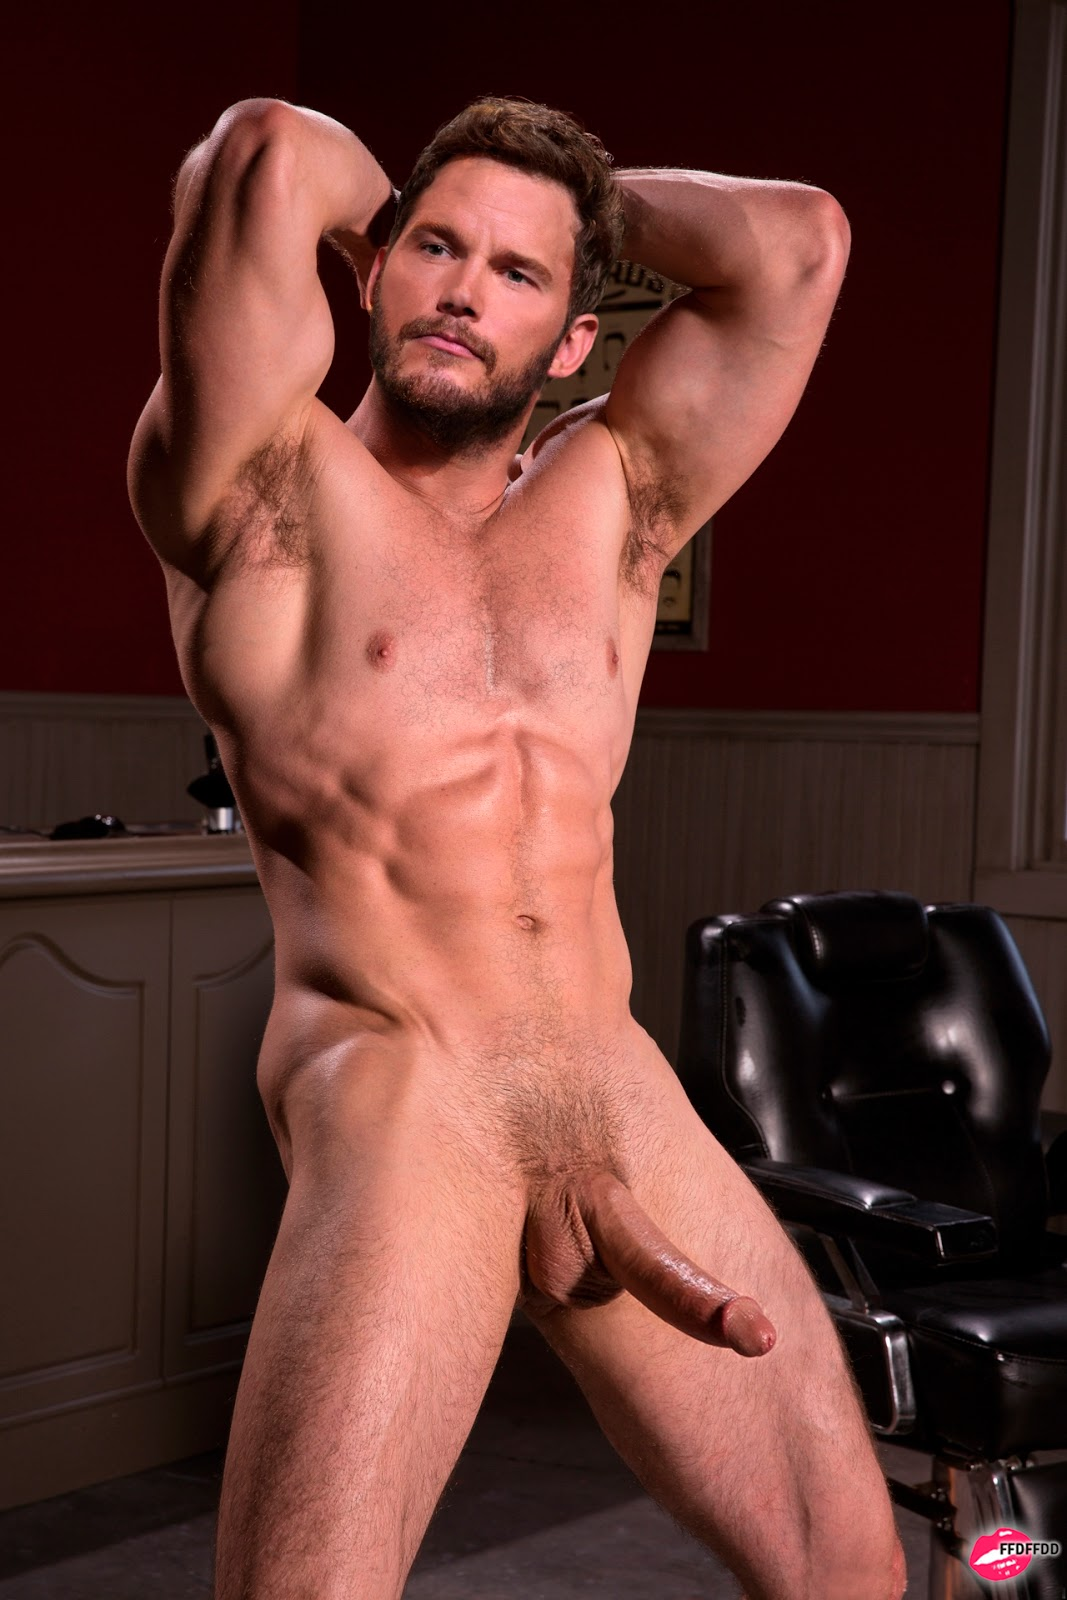 from Rafael naked sward gay porn